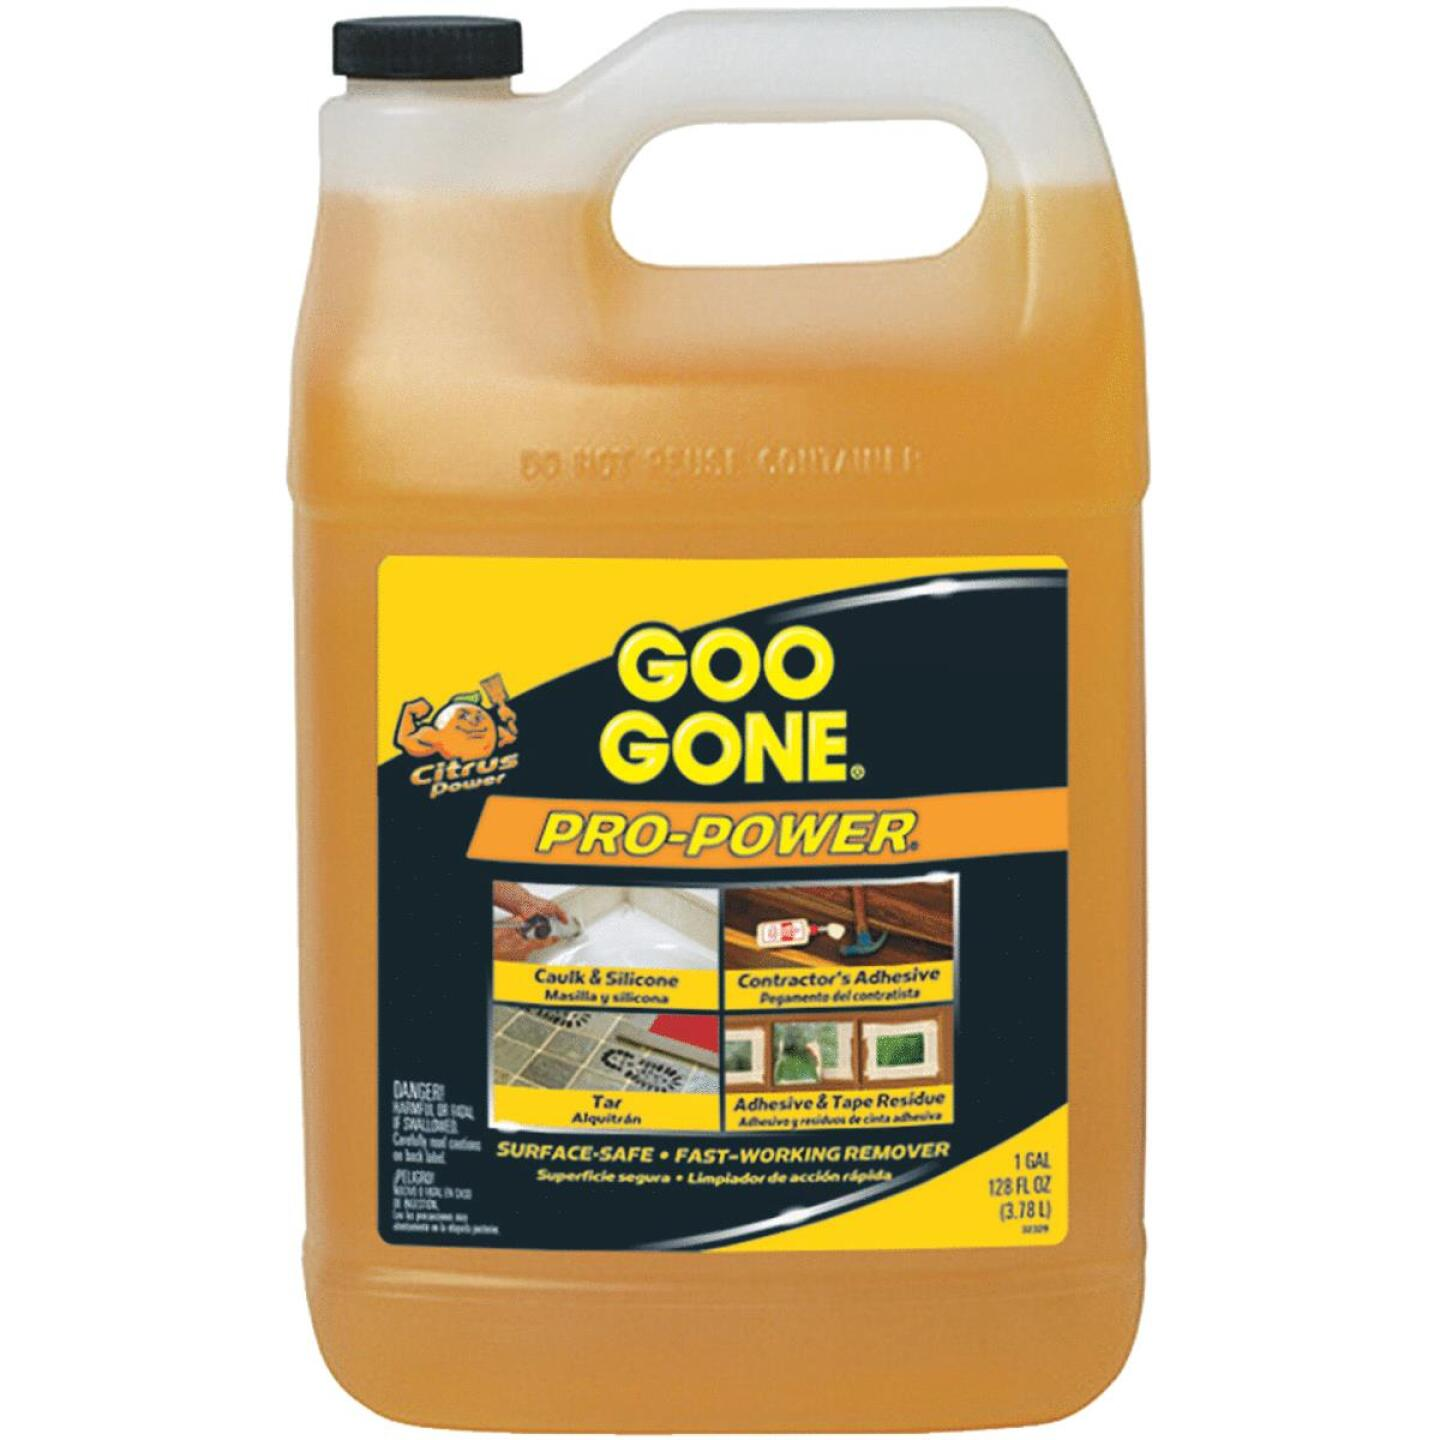 Goo Gone 1 Gal. Pro-Power Adhesive Remover Image 33